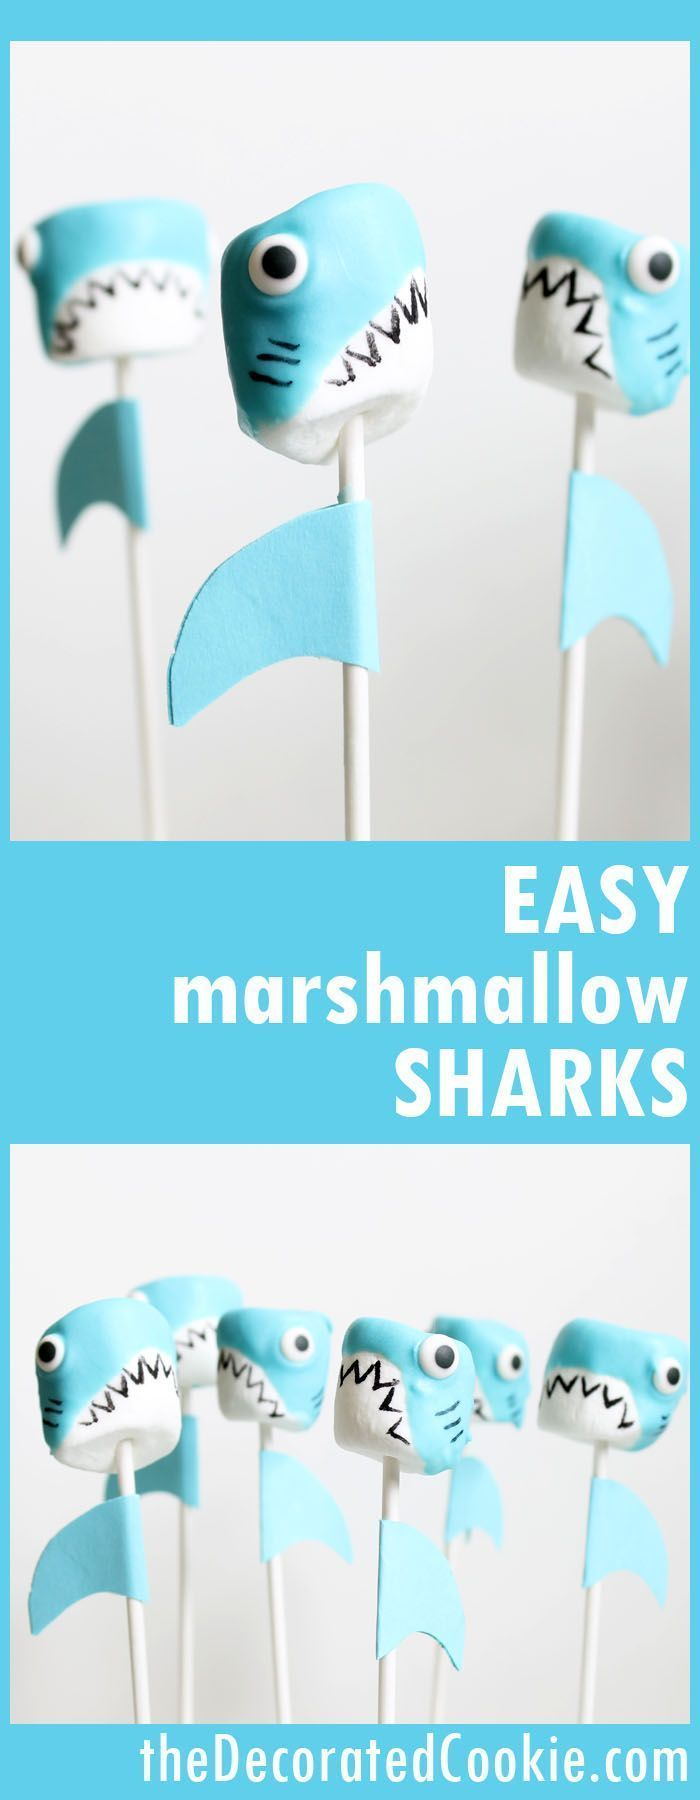 #marshmallow #summer #shark #pops #week #food #idea #easy #for #fun #aShark marshmallow pops for shark week, a fun summer food idea. easy SHARK marshmallow pops for shark weekeasy SHARK marshmallow pops for shark week #sharkweekfood #marshmallow #summer #shark #pops #week #food #idea #easy #for #fun #aShark marshmallow pops for shark week, a fun summer food idea. easy SHARK marshmallow pops for shark weekeasy SHARK marshmallow pops for shark week #sharkweekfood #marshmallow #summer #shark #pops #sharkweekfood